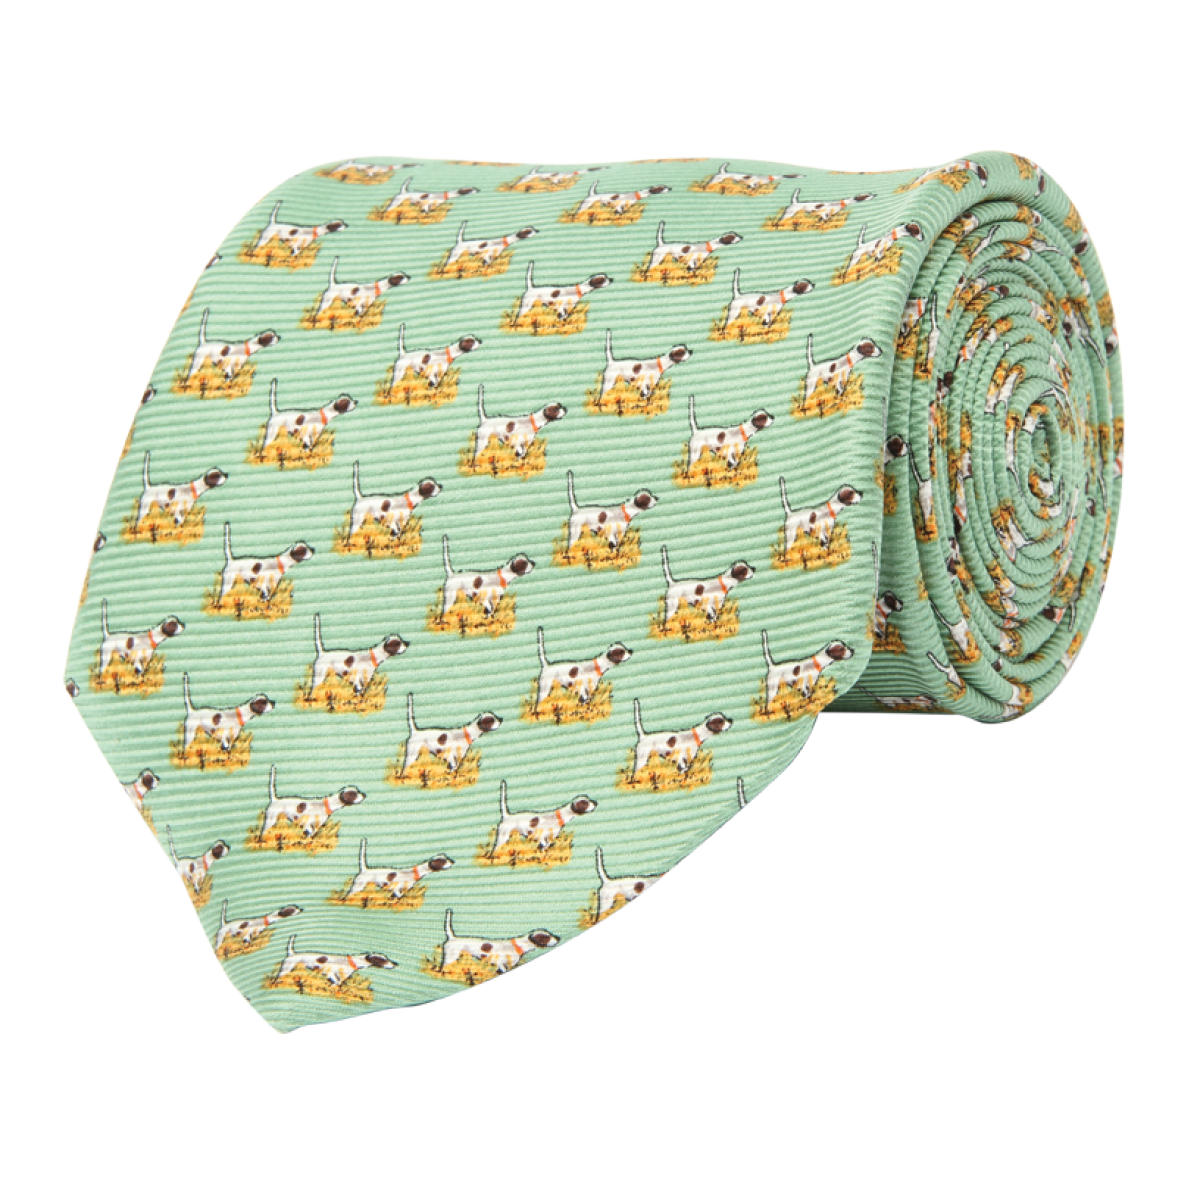 Wm. Lamb & Son - Pointer Tie - Green